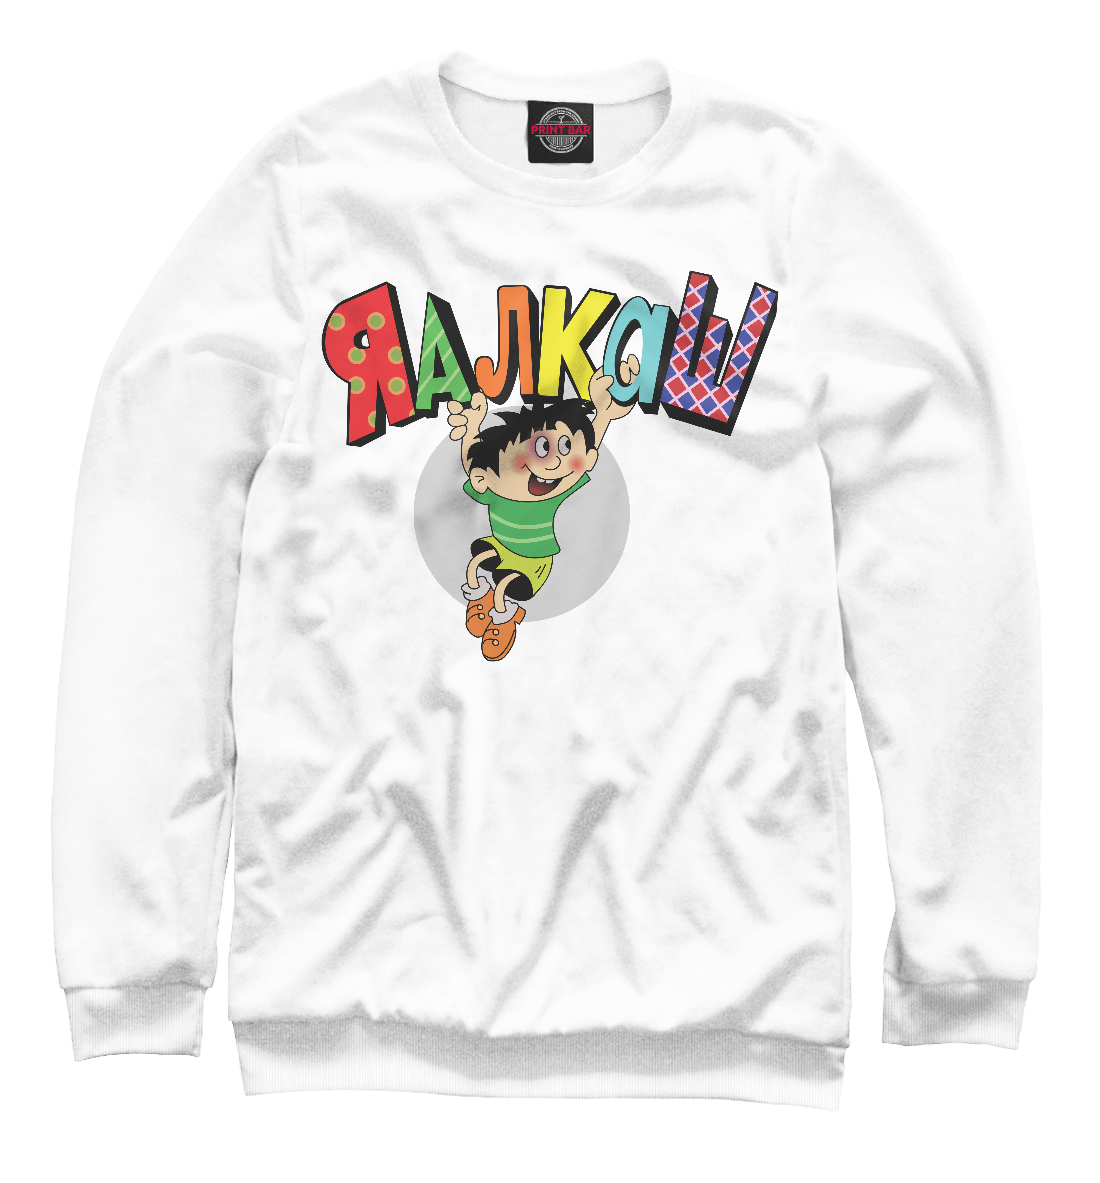 Men's Sweatshirt I Alkash